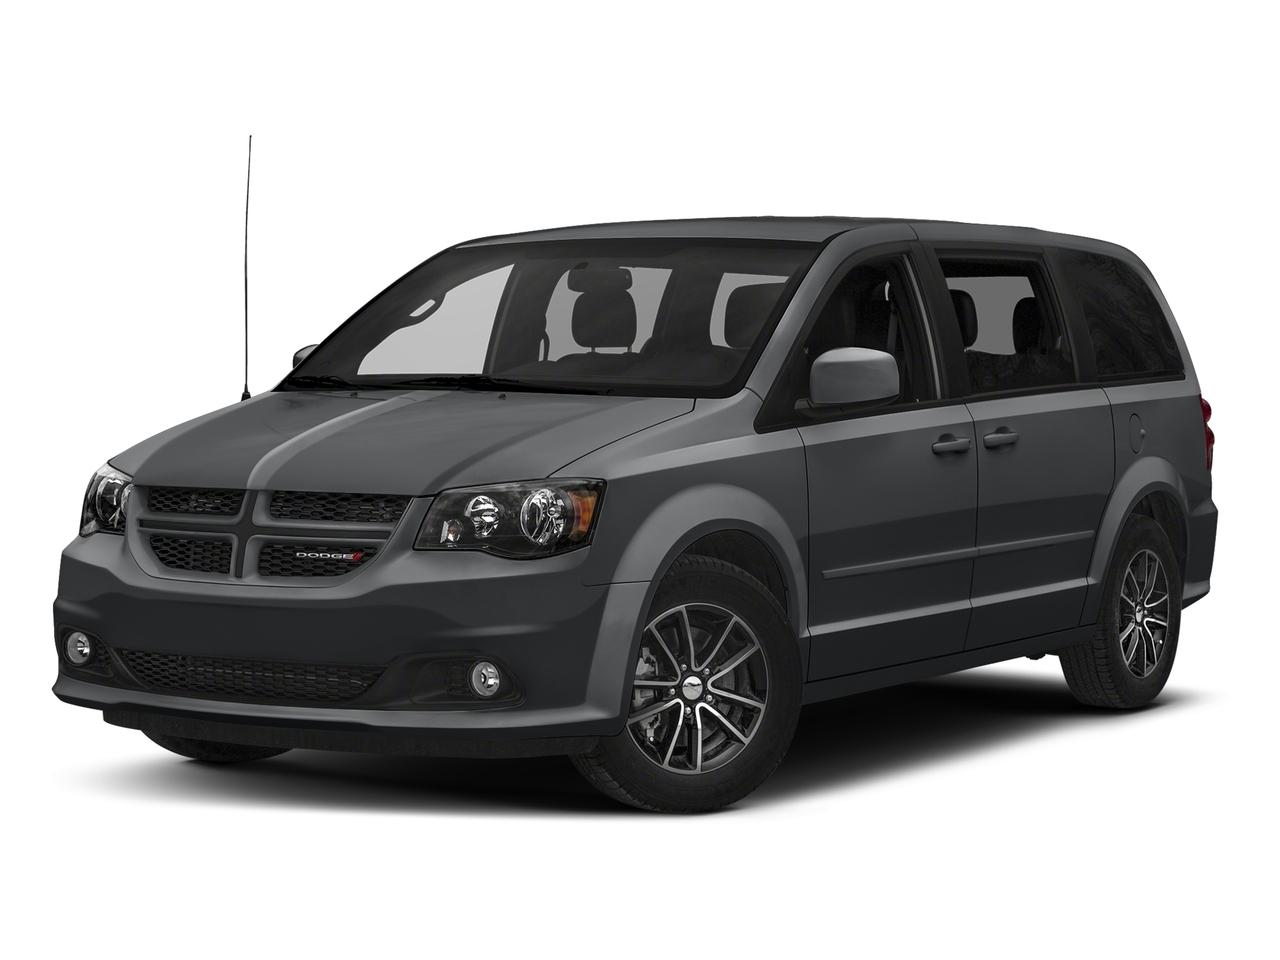 2018 Dodge Grand Caravan Vehicle Photo in Spokane, WA 99207